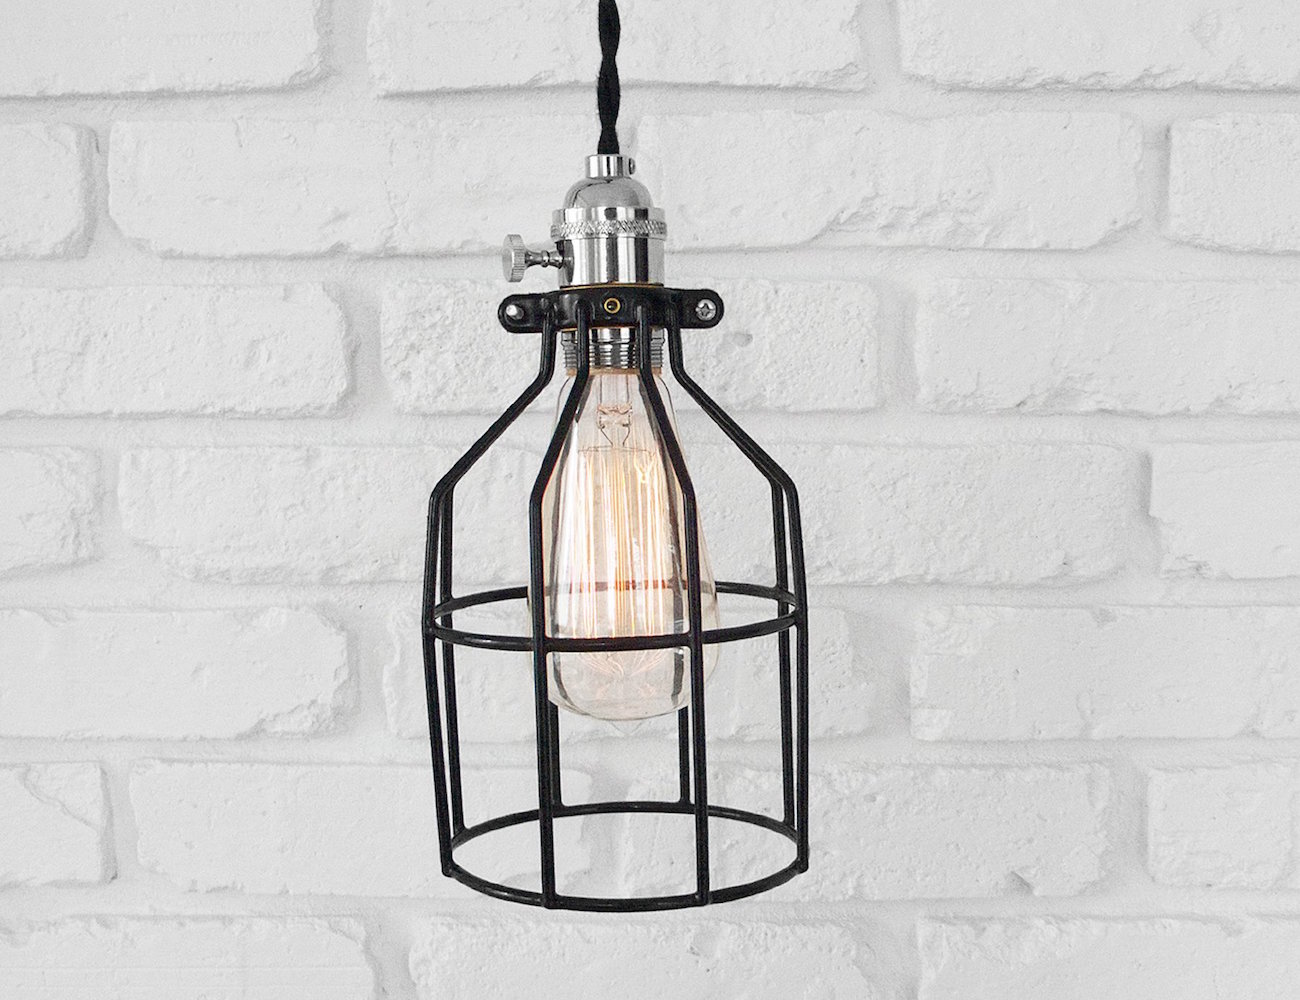 The Mercer Lamp – Vintage Pendant or Table Lamp